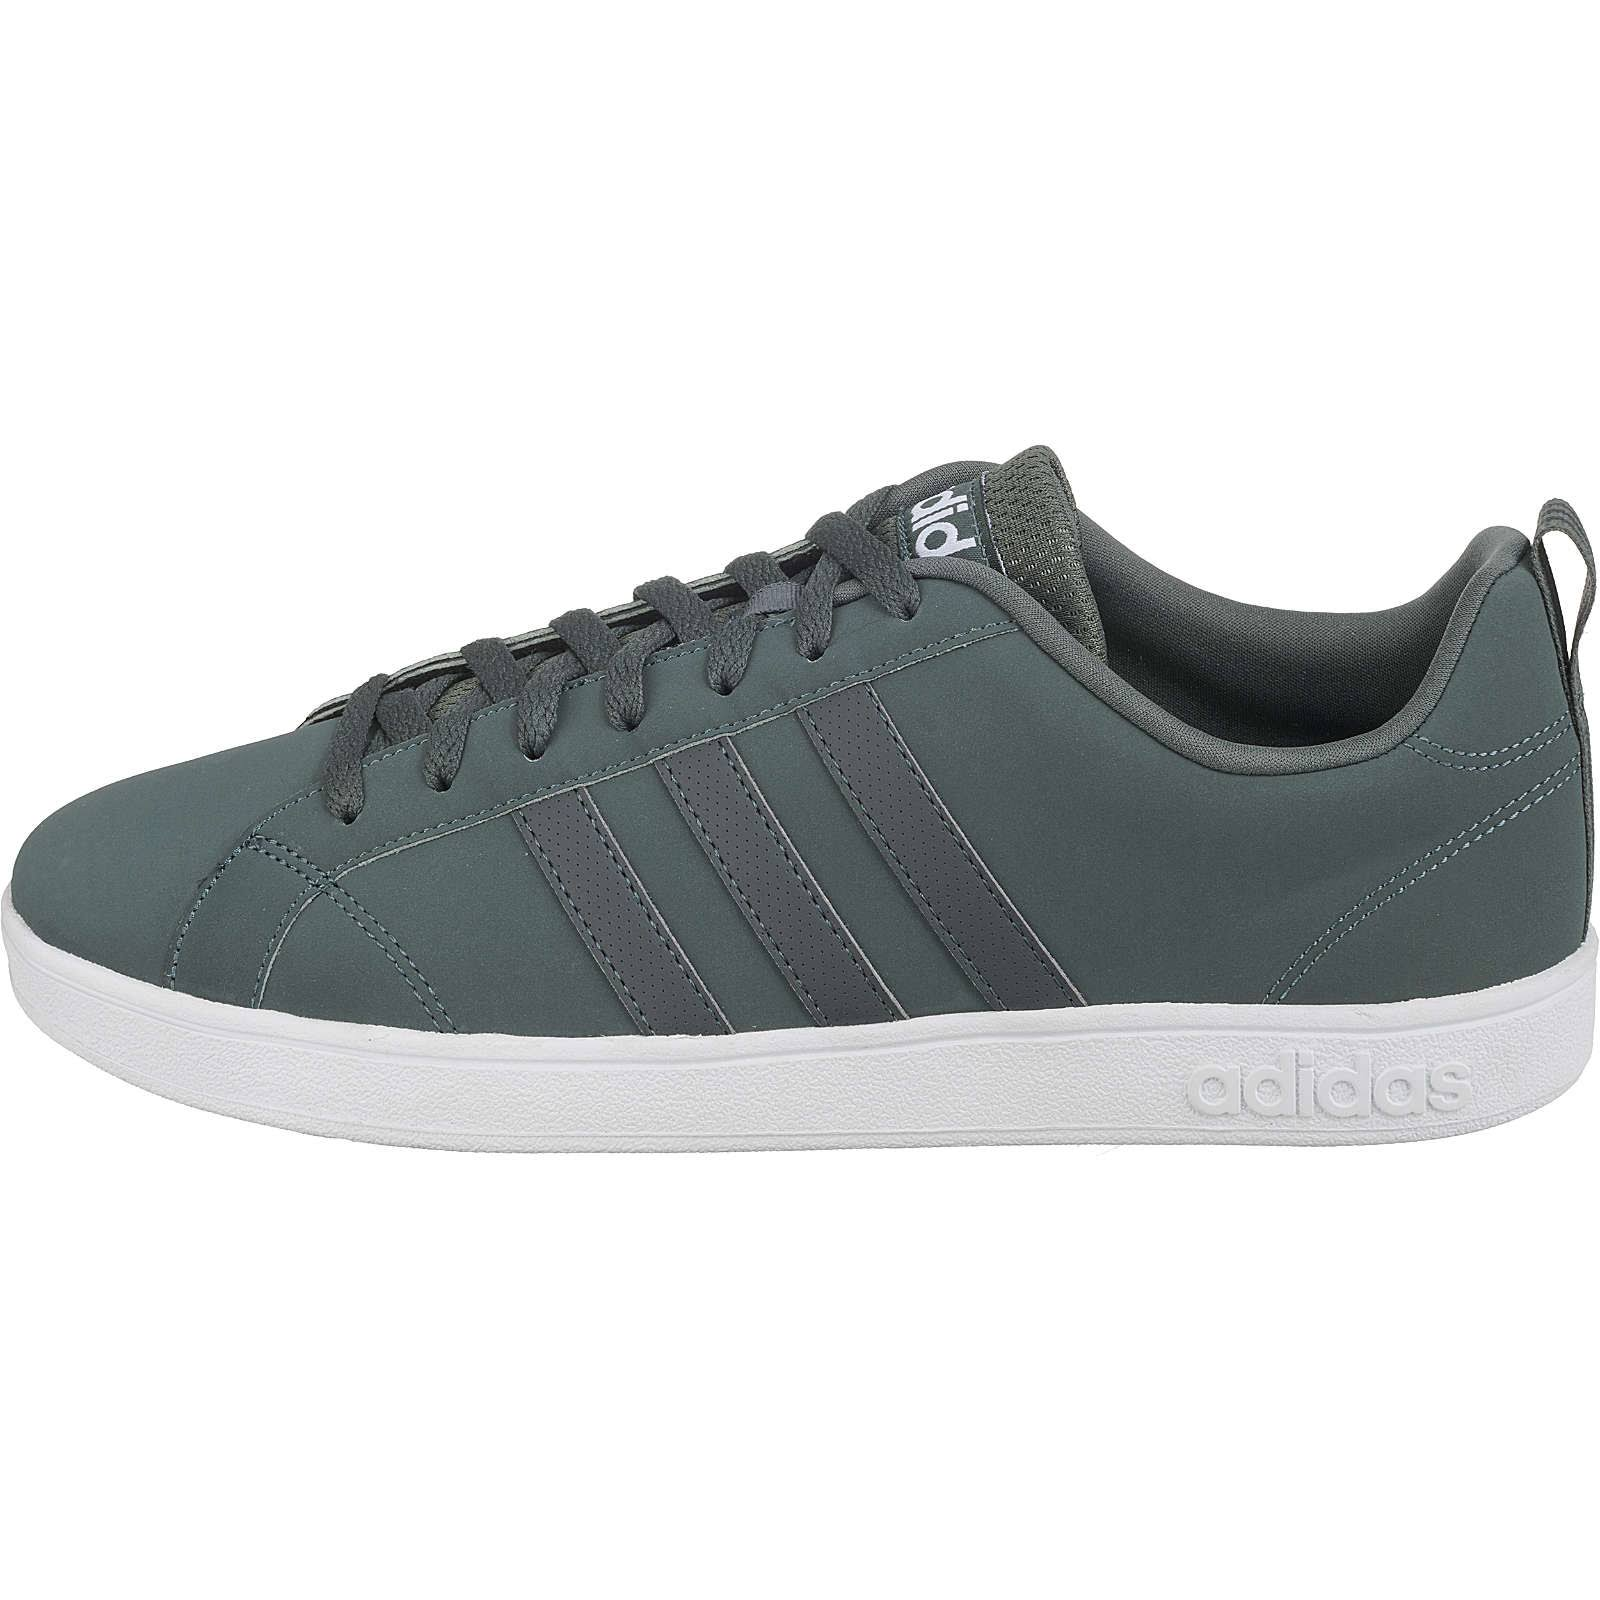 Darkgreen Vs Adidas Scarpe Advantage Vs Darkgreen Adidas Advantage Scarpe 3qc4RLAj5